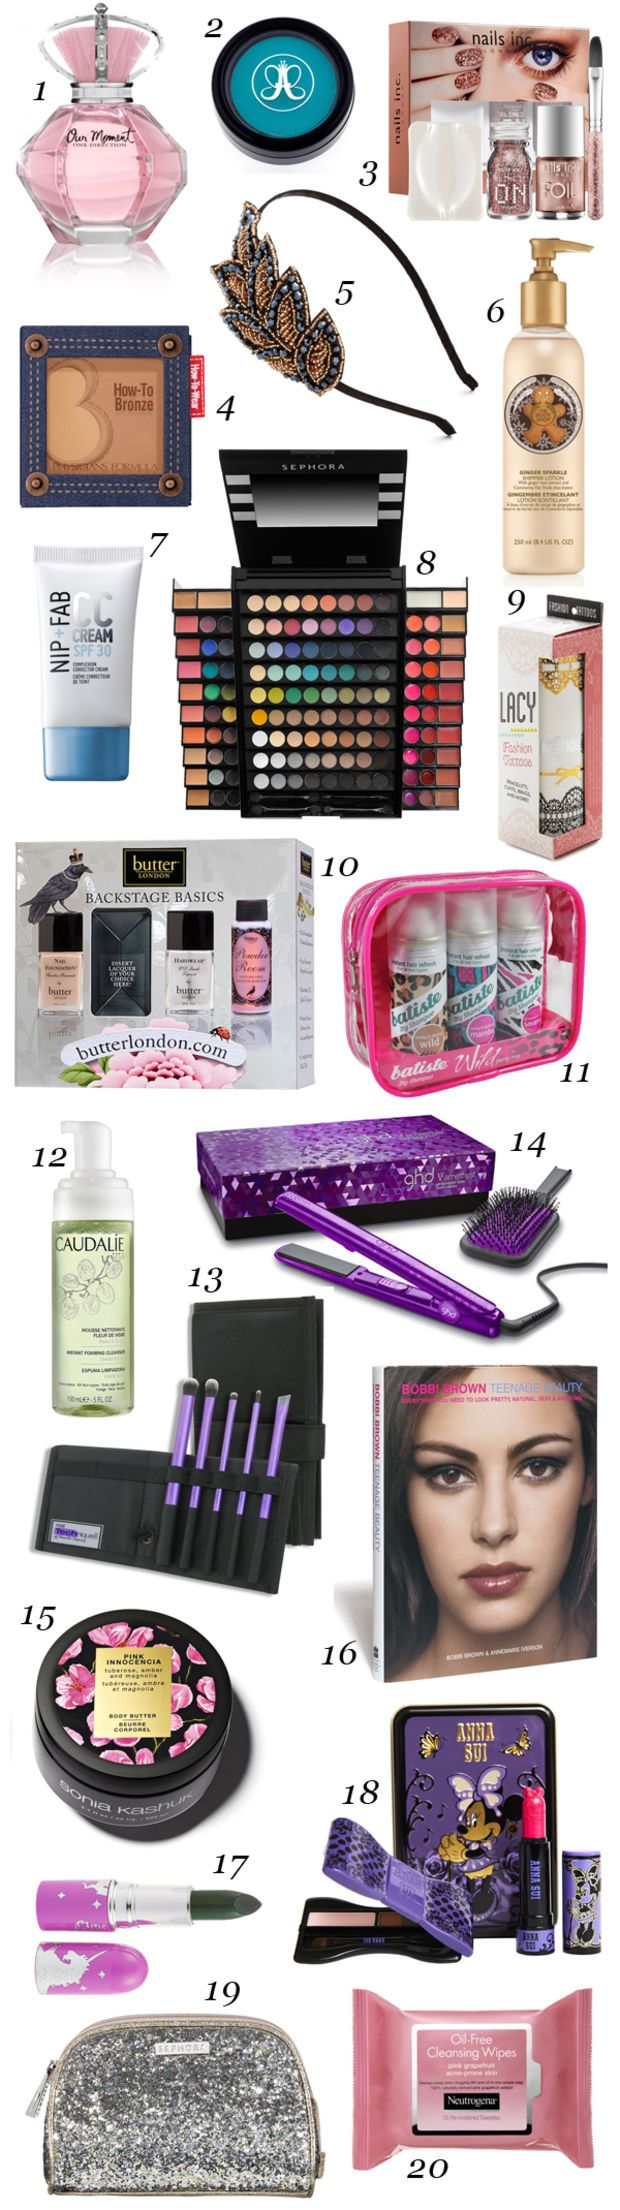 20 Beauty Gift Ideas For Teens And Tweens Gift Christmas Gifts And Xmas